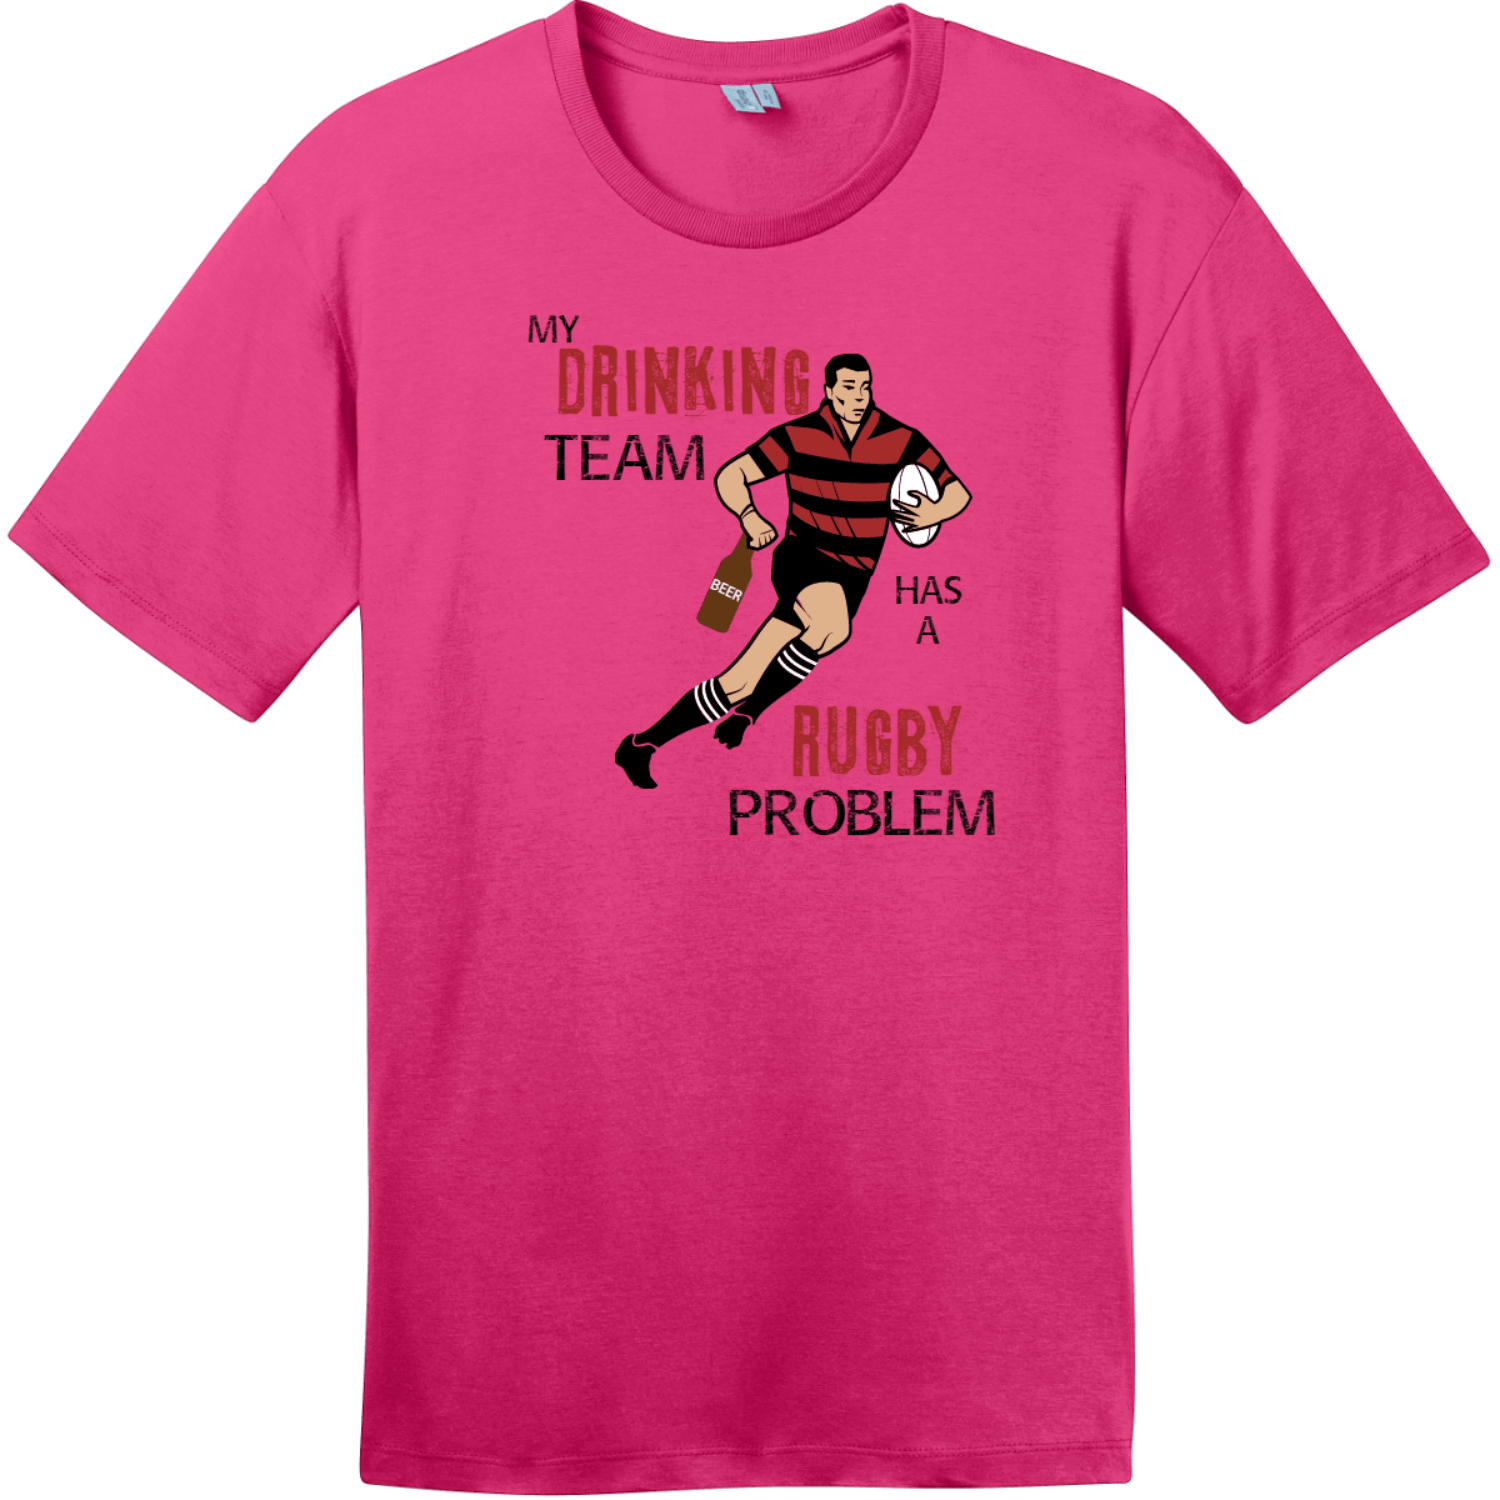 My Drinking Team Has A Rugby Problem T-Shirt Dark Fuchsia District Perfect Weight Tee DT104